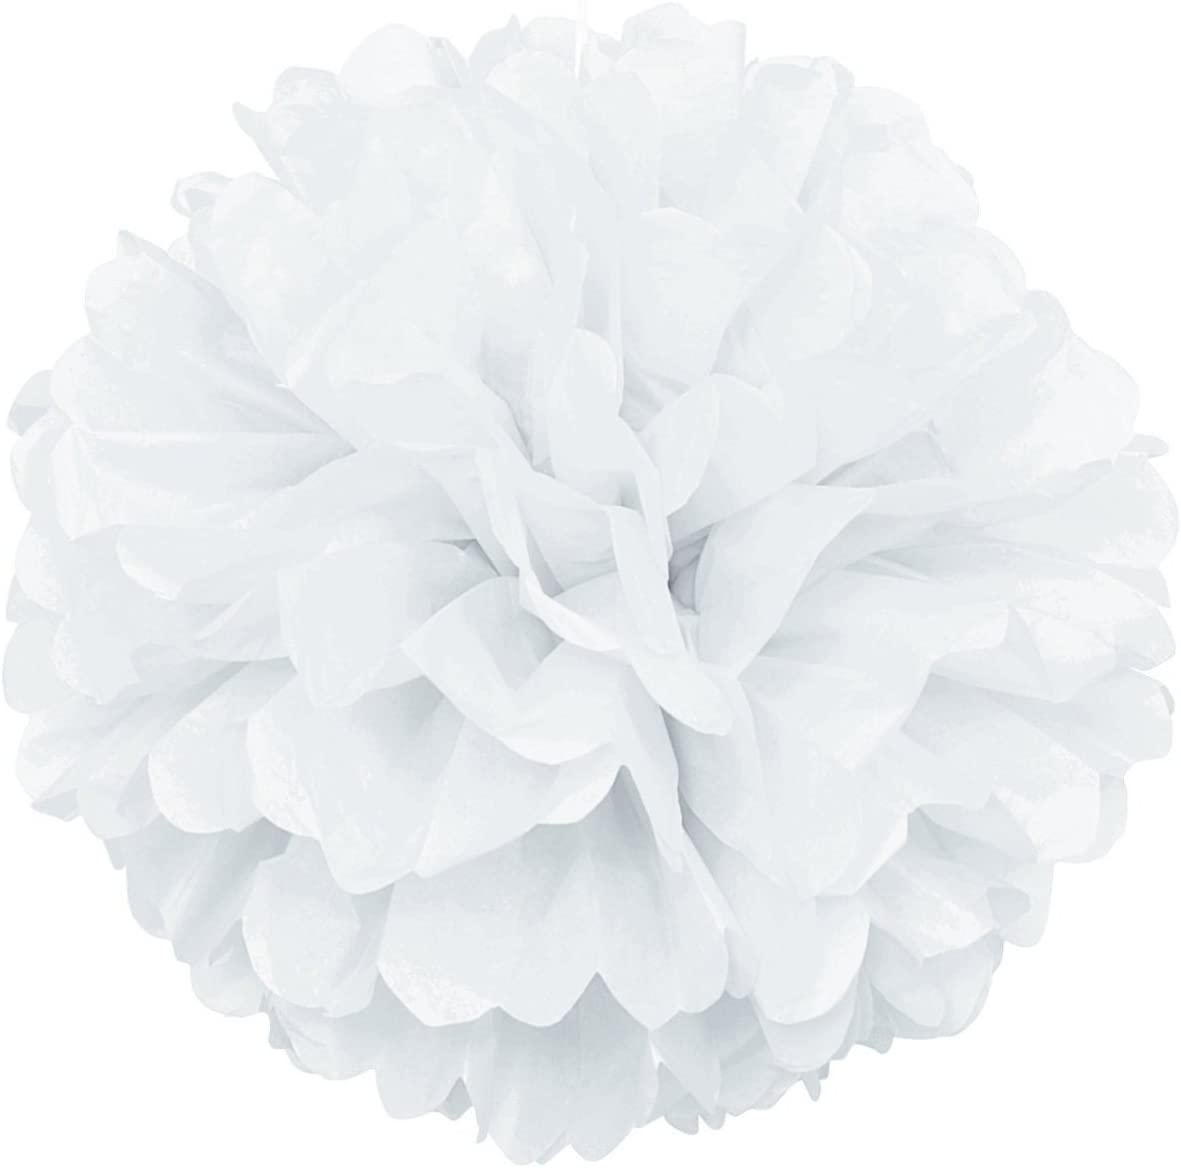 Lightingsky 10pcs DIY Decorative Tissue Paper Pom-poms Flowers Ball Perfect for Party Wedding Home Outdoor Decoration (10-inch Diameter, White)